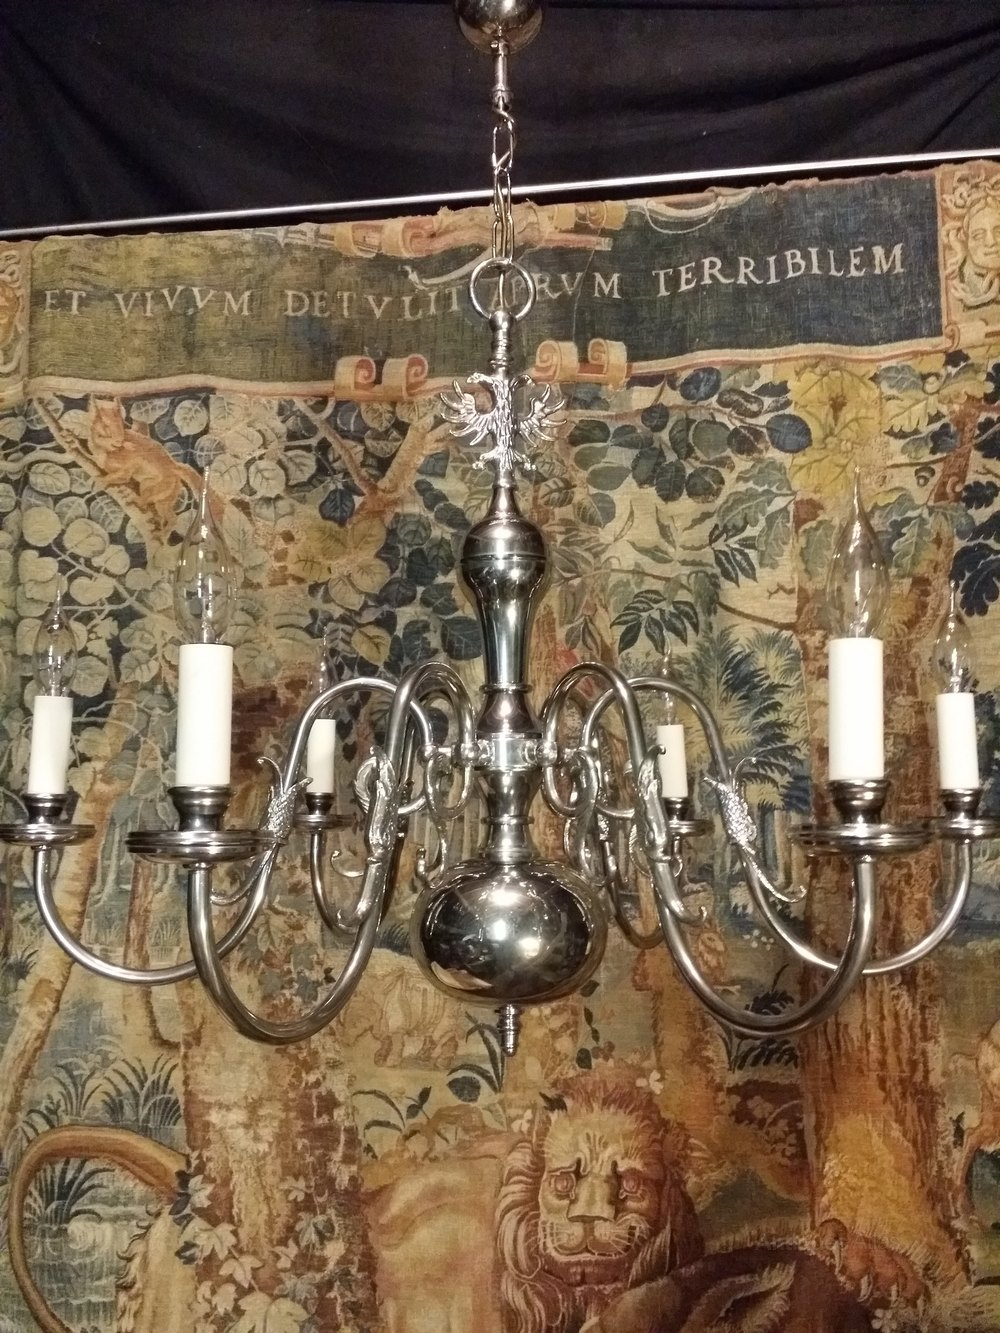 Silver plated chandeliers flemish chandeliers this is a quality nickle plated six light flemish chandelier the silver plating is in excellent condition and the chandelier has been rewired with new bulb arubaitofo Gallery